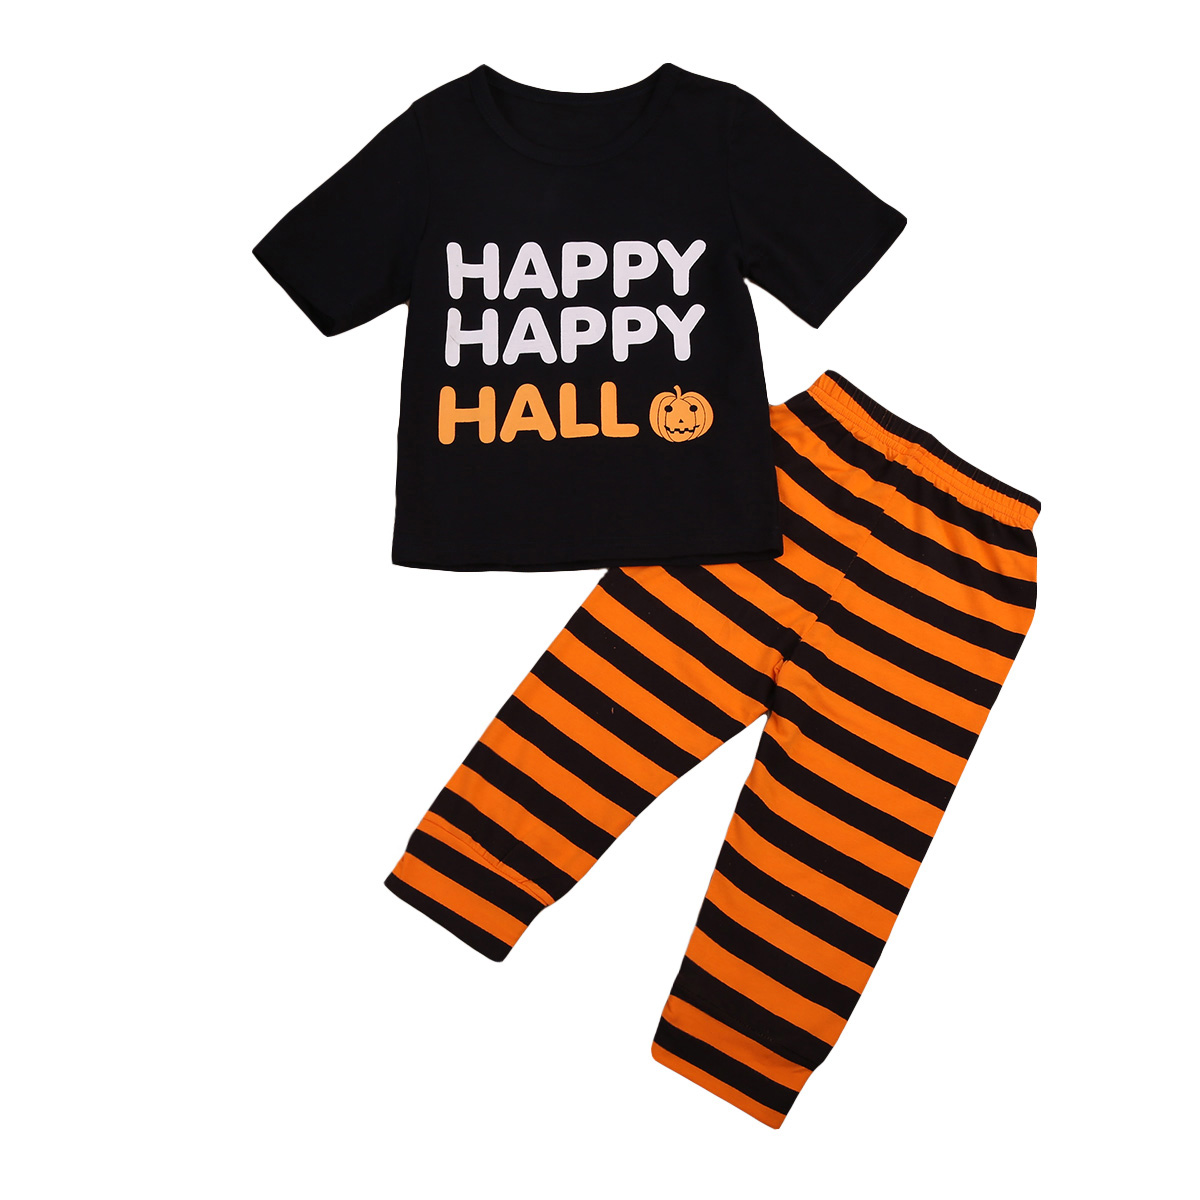 For Sale 2PCS Kids Baby Toddler Boy Girl Clothes Halloween Set Happy T-shirt Top+Striped Pants Leggings Outfit Clothes 0-24M